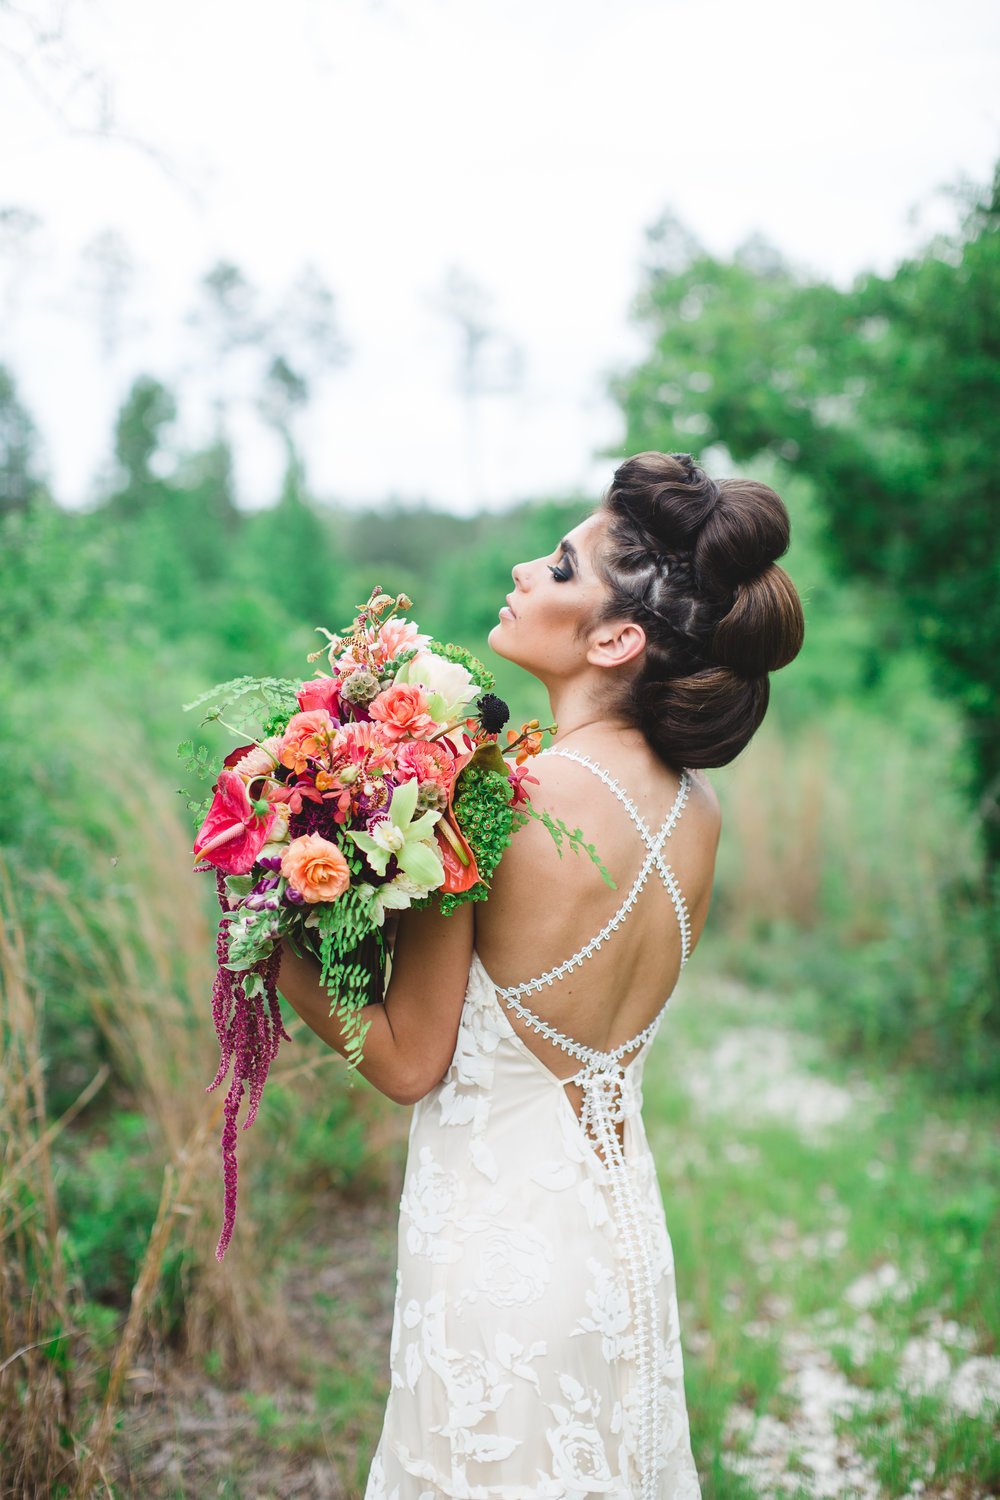 Glamping Shoot  //  Savannah wedding photos by Izzy Hudgins Photography  //  A Lowcountry Wedding Magazine